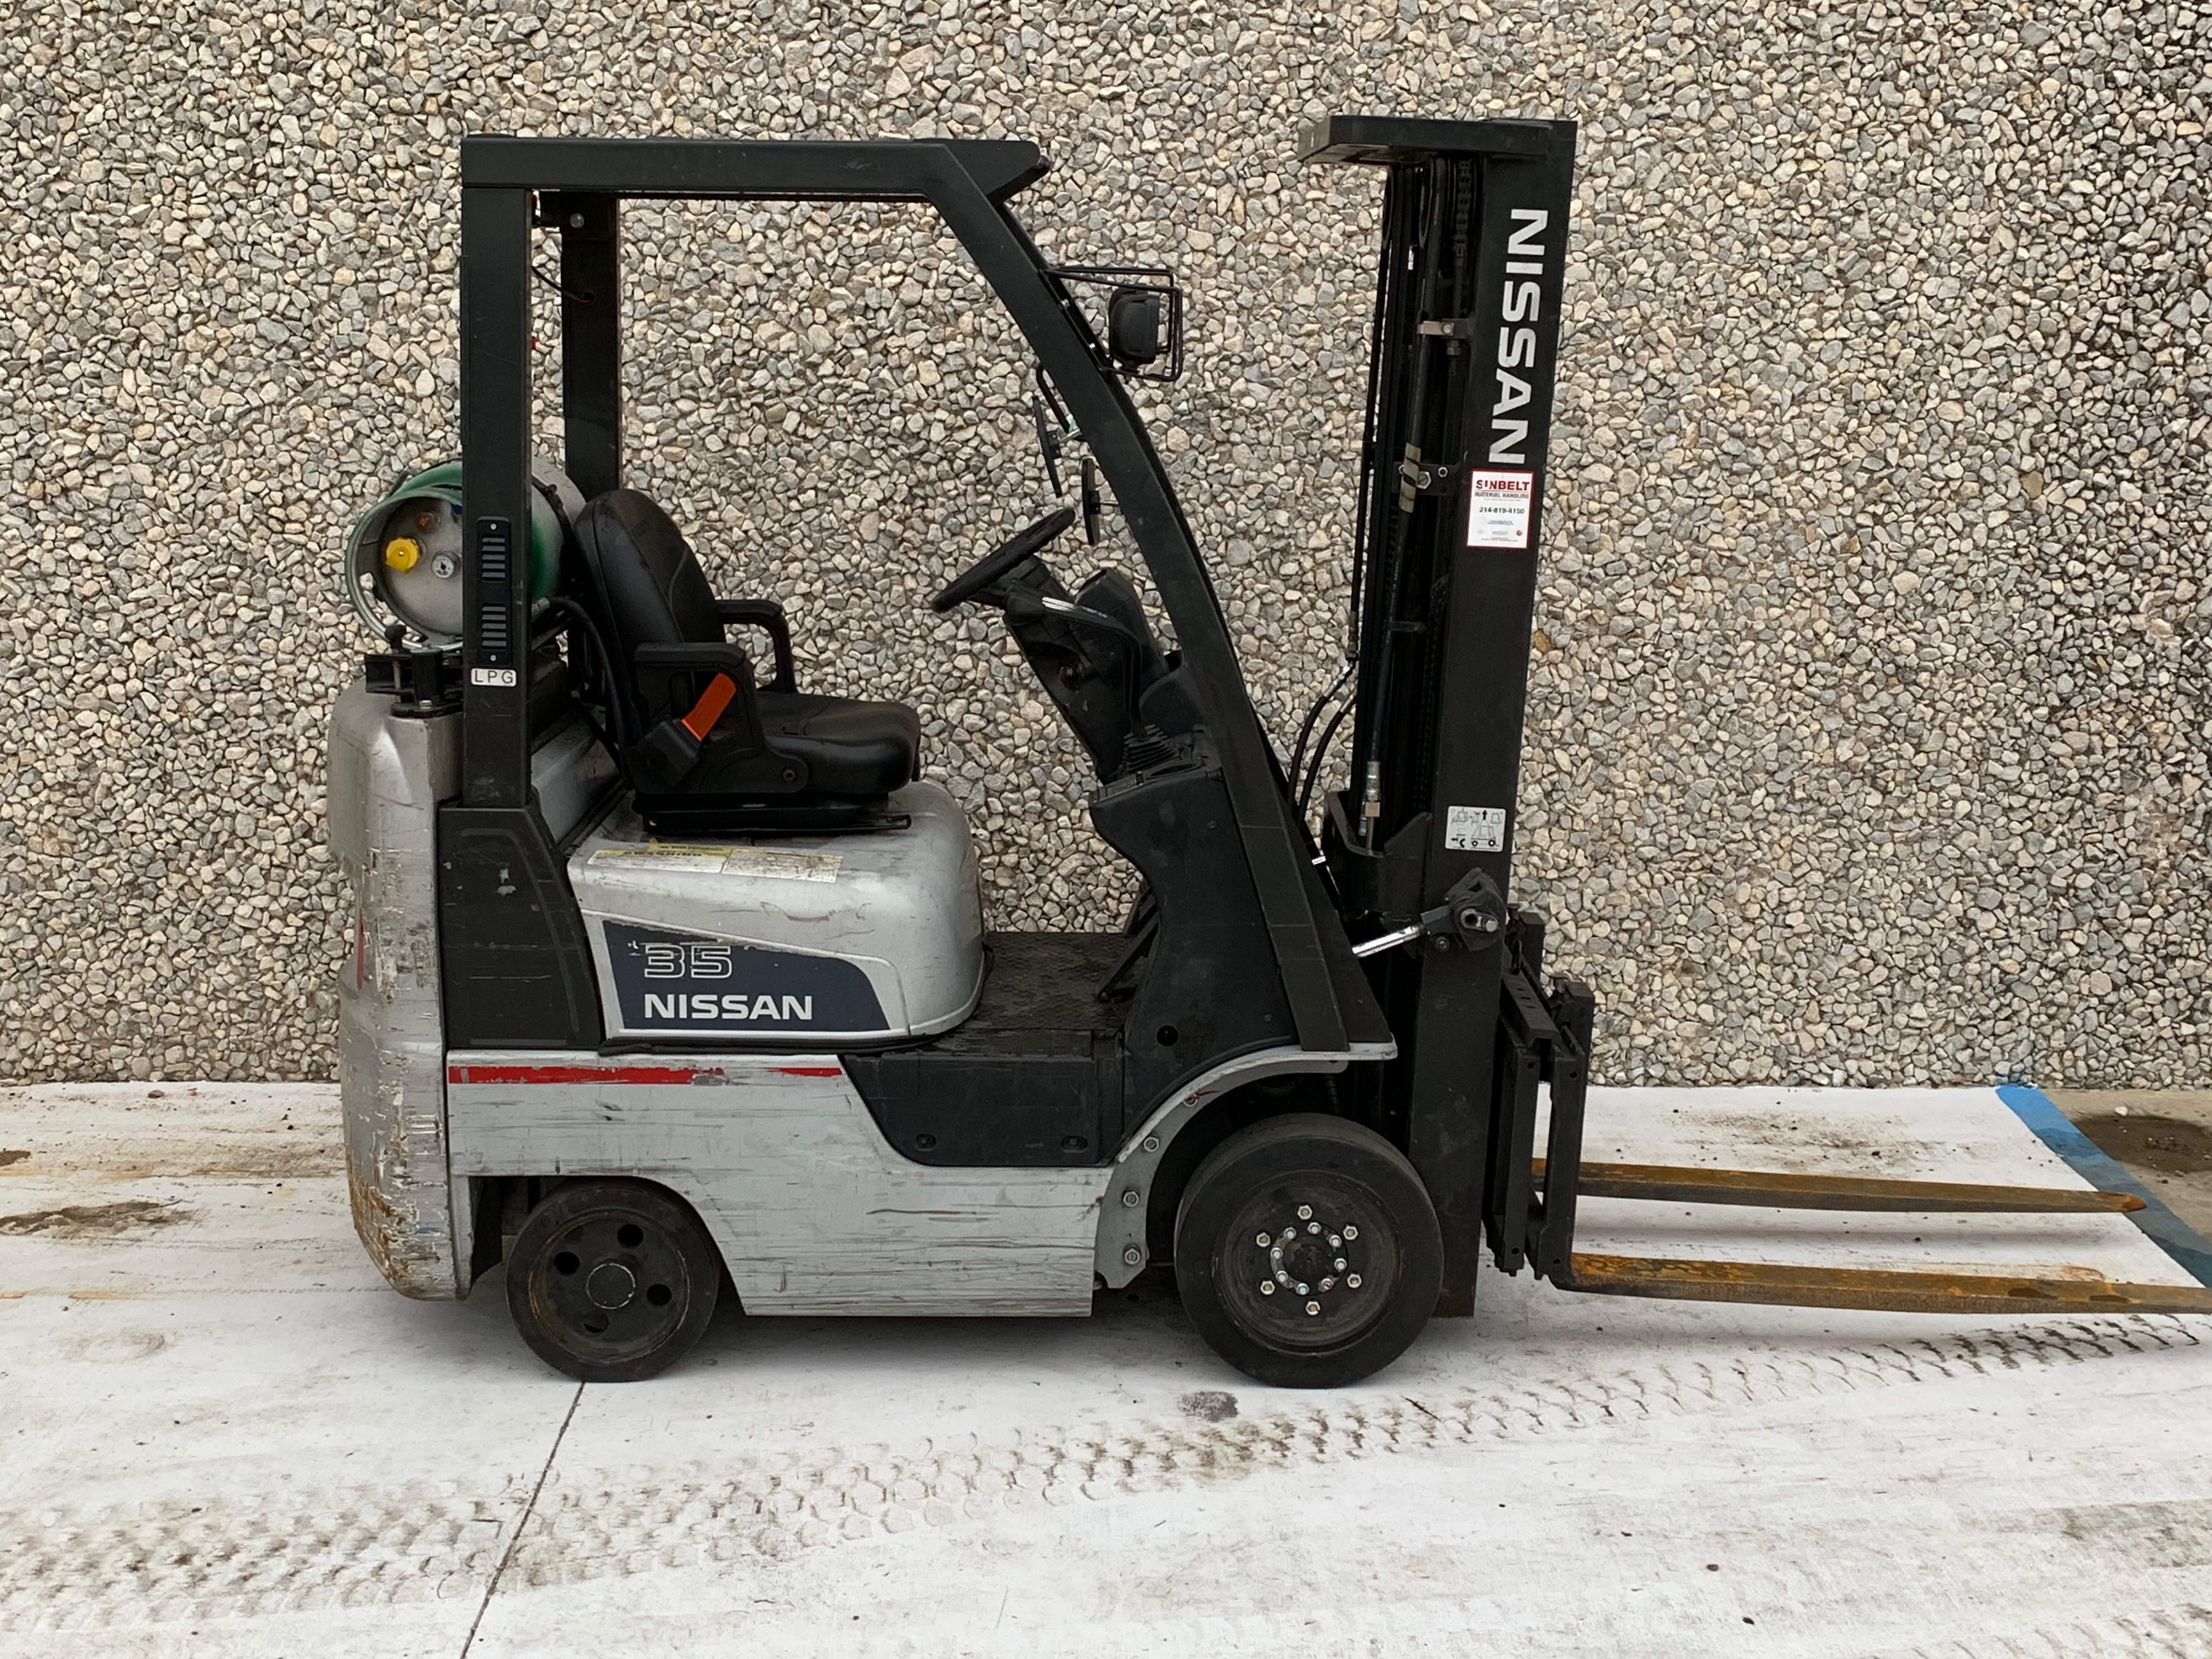 used forklifts, used forklifts for sale, used forklift, used forklift for sale